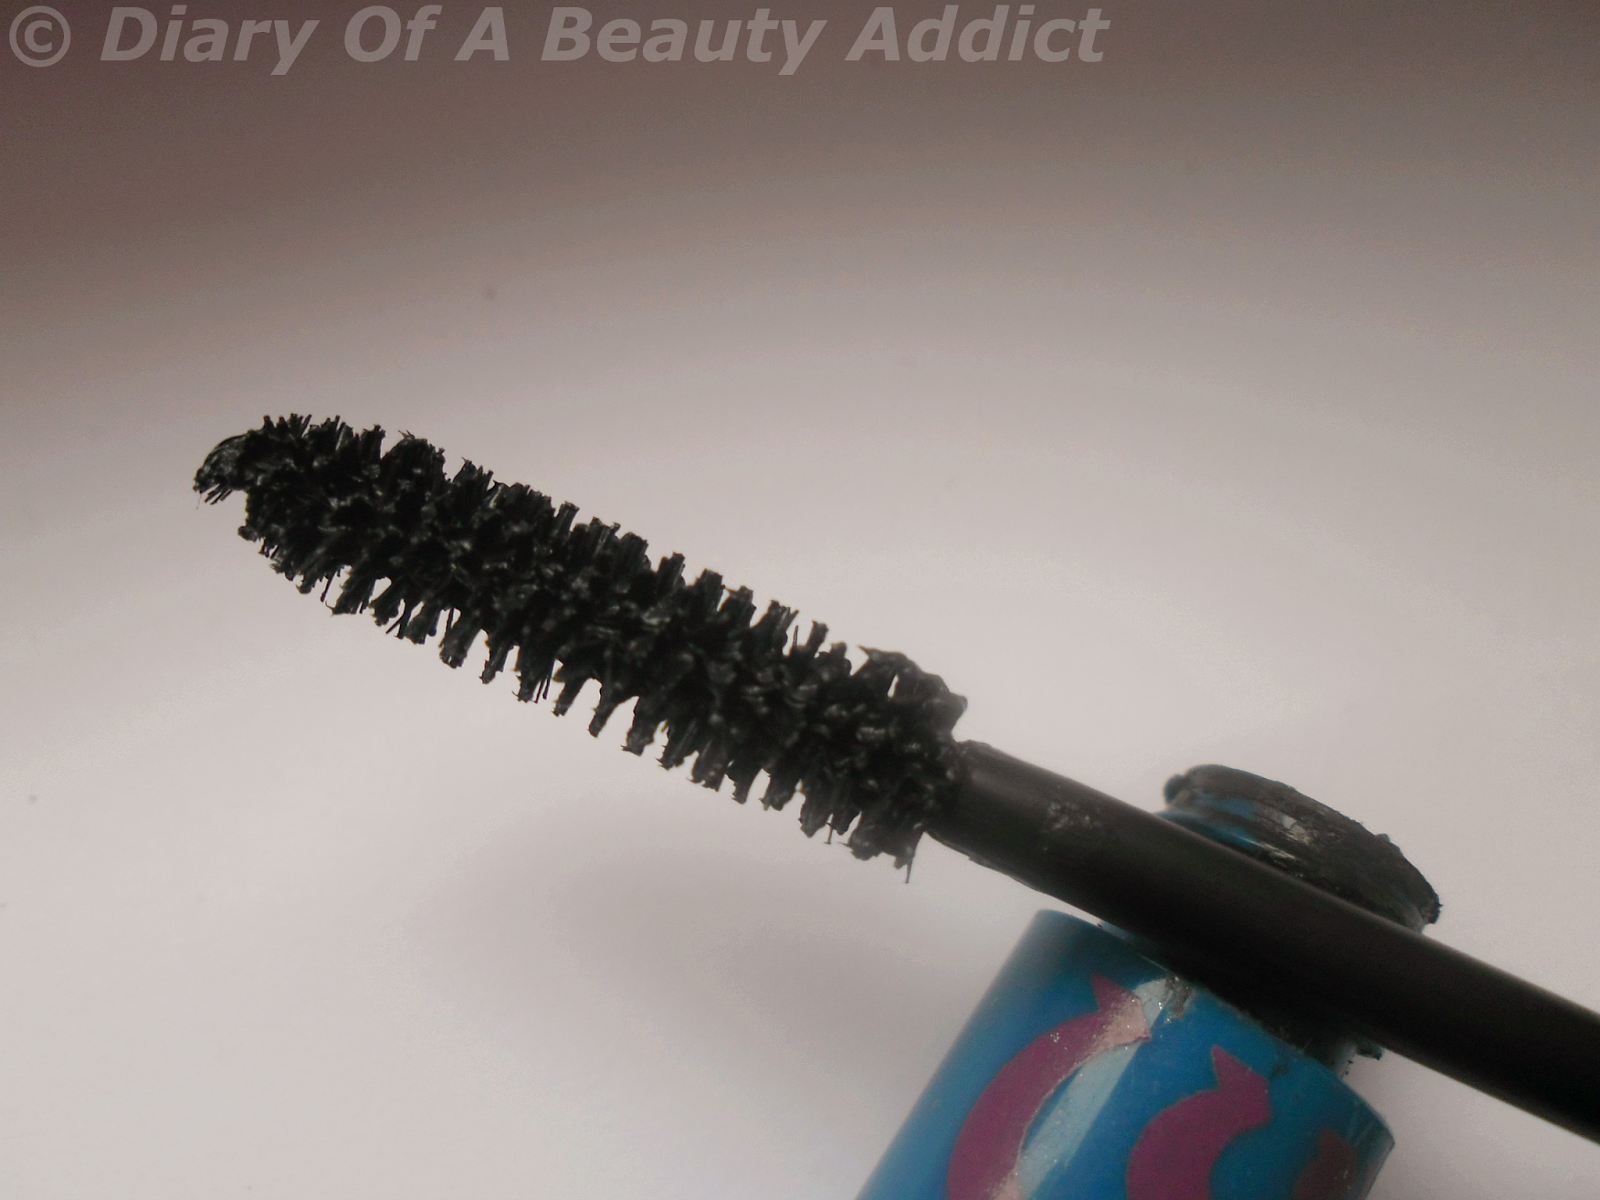 Avon Colortrend Plump Out Mascara Black